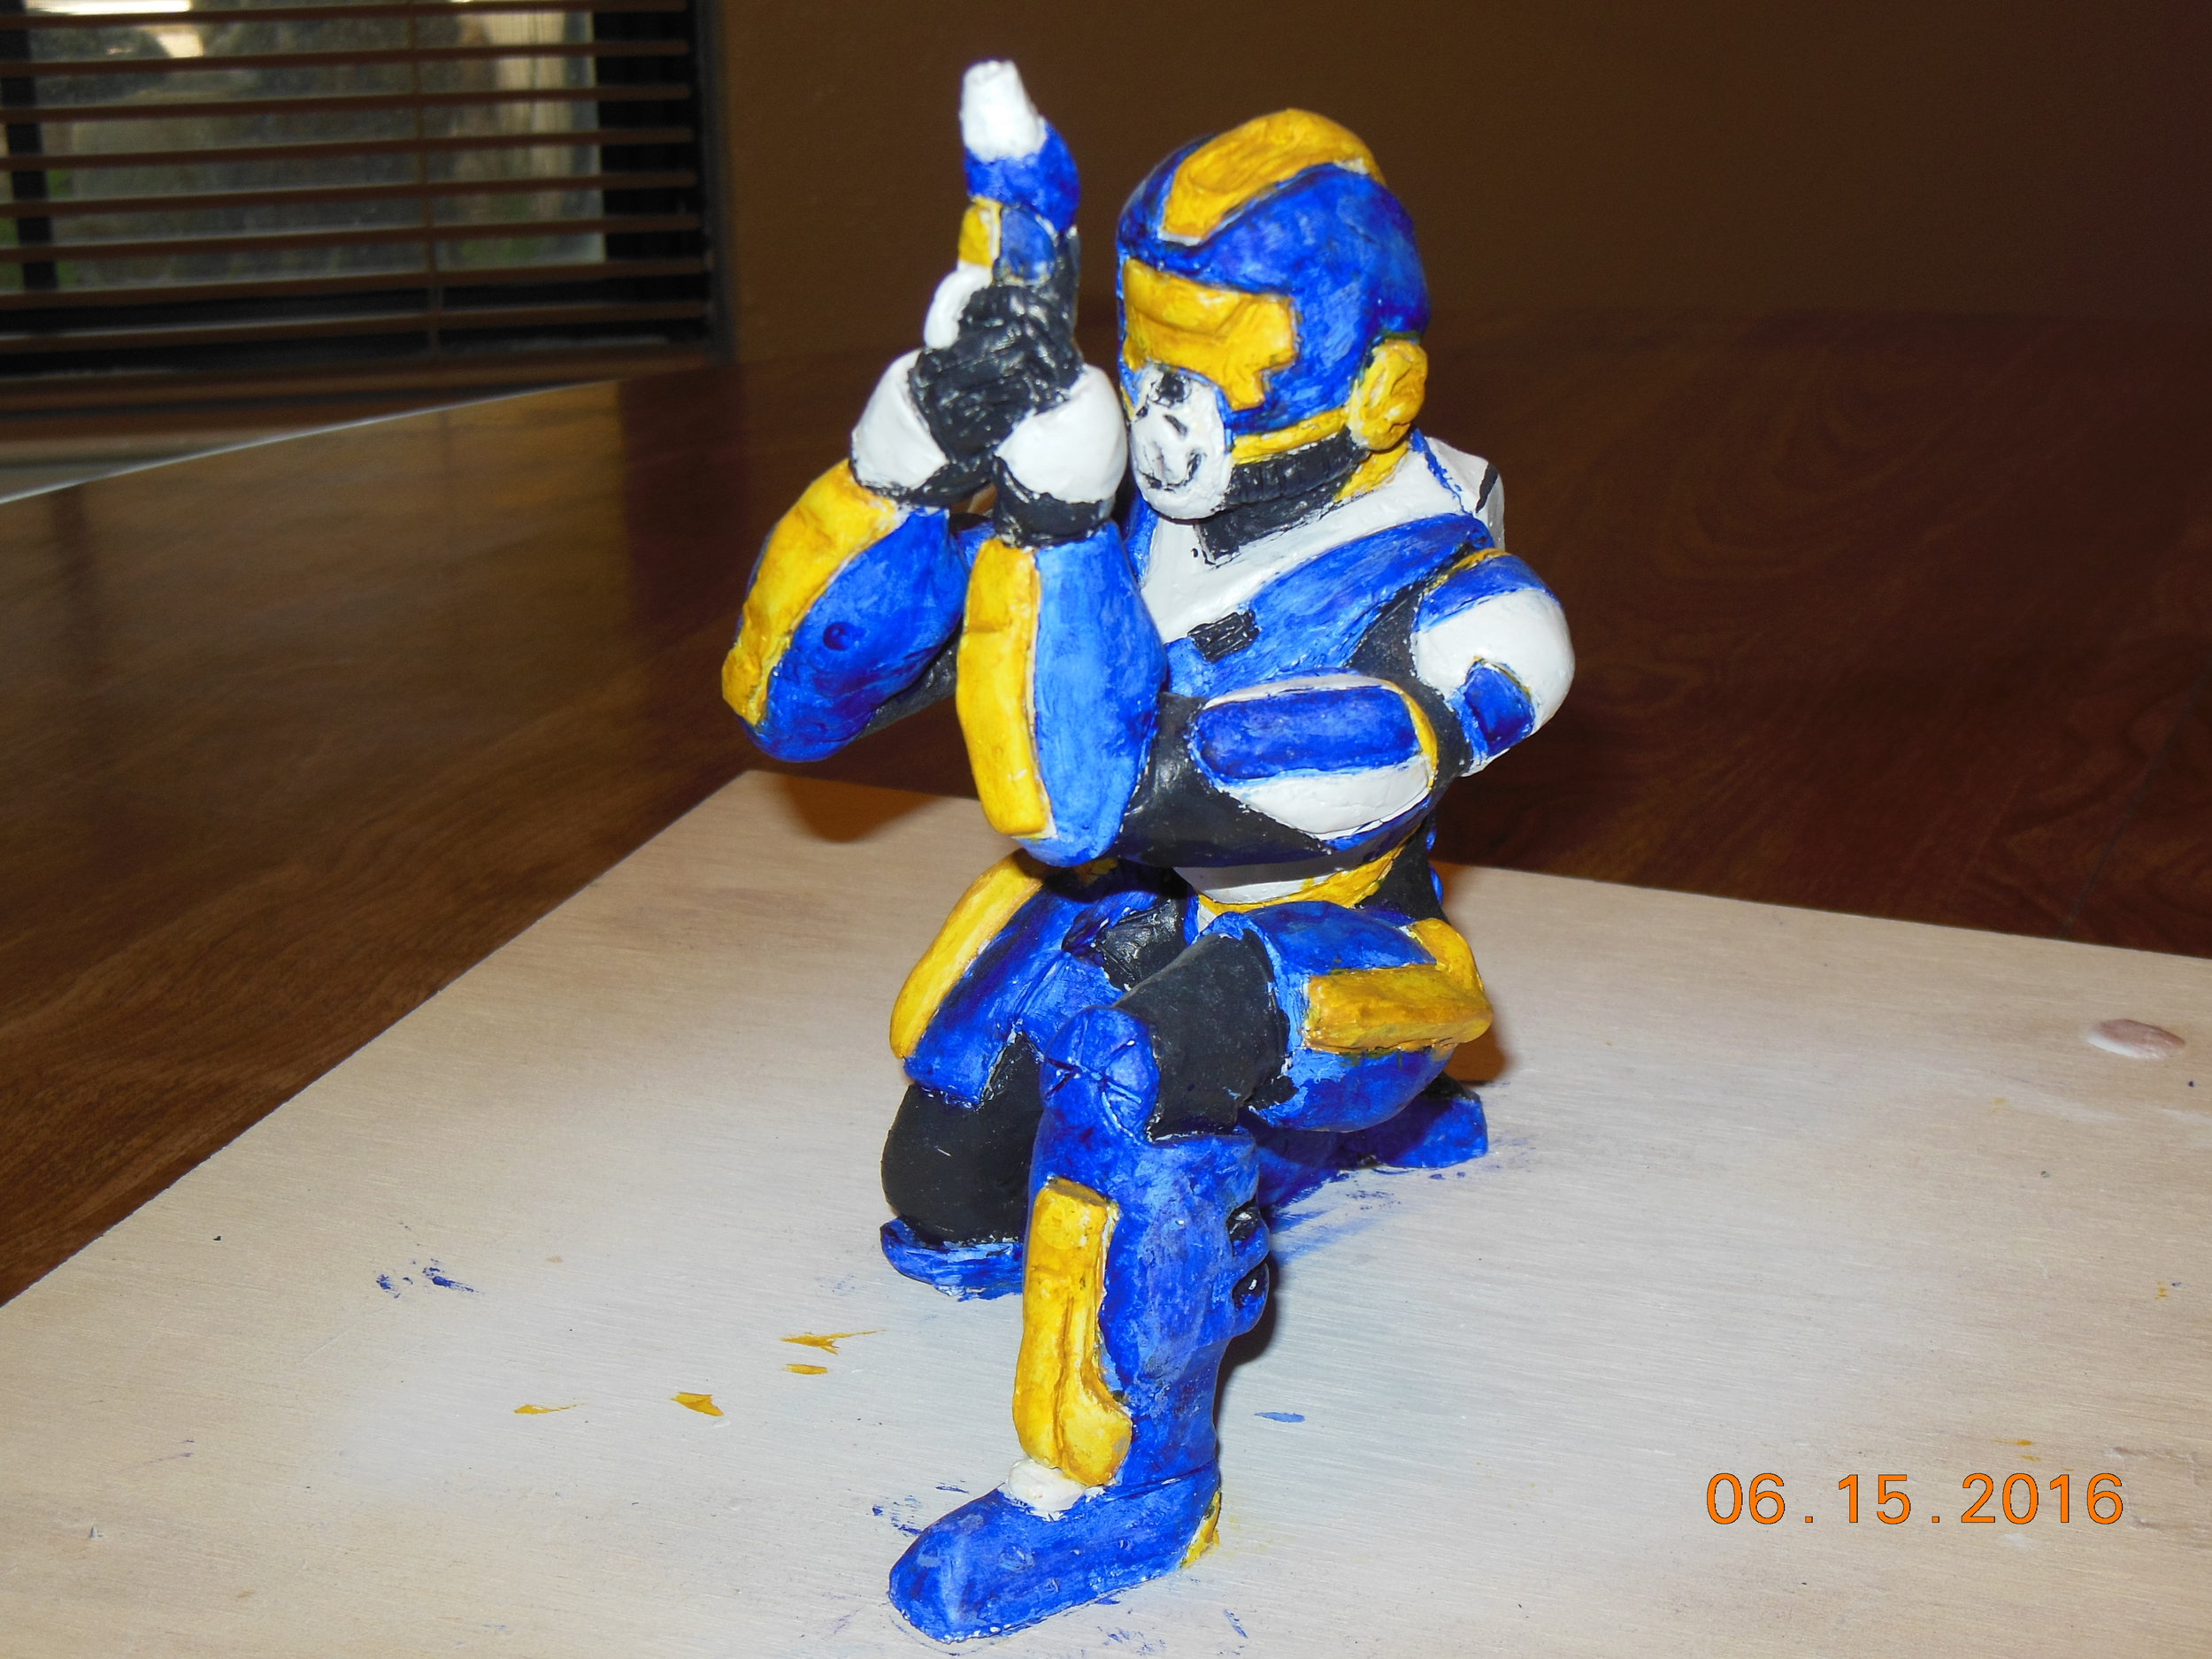 A bounty hunter character sculpture I made. Referenced drawings to the side.